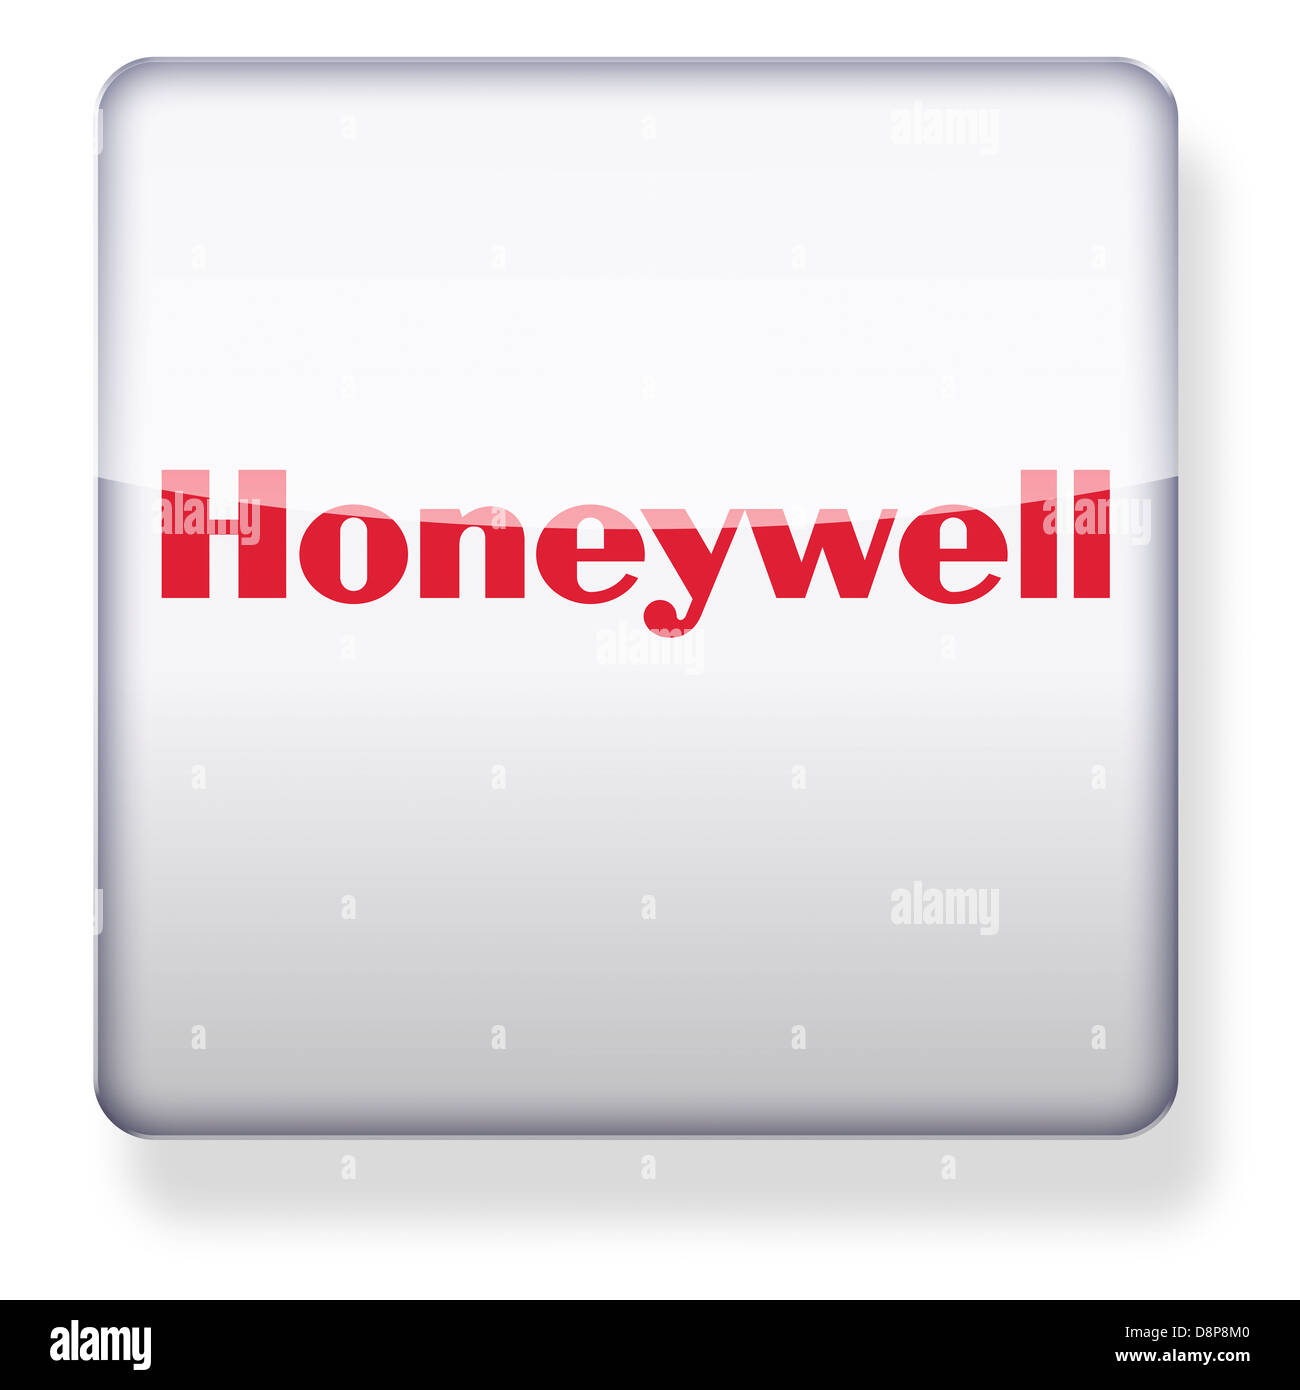 Honeywell logo as an app icon  Clipping path included Stock